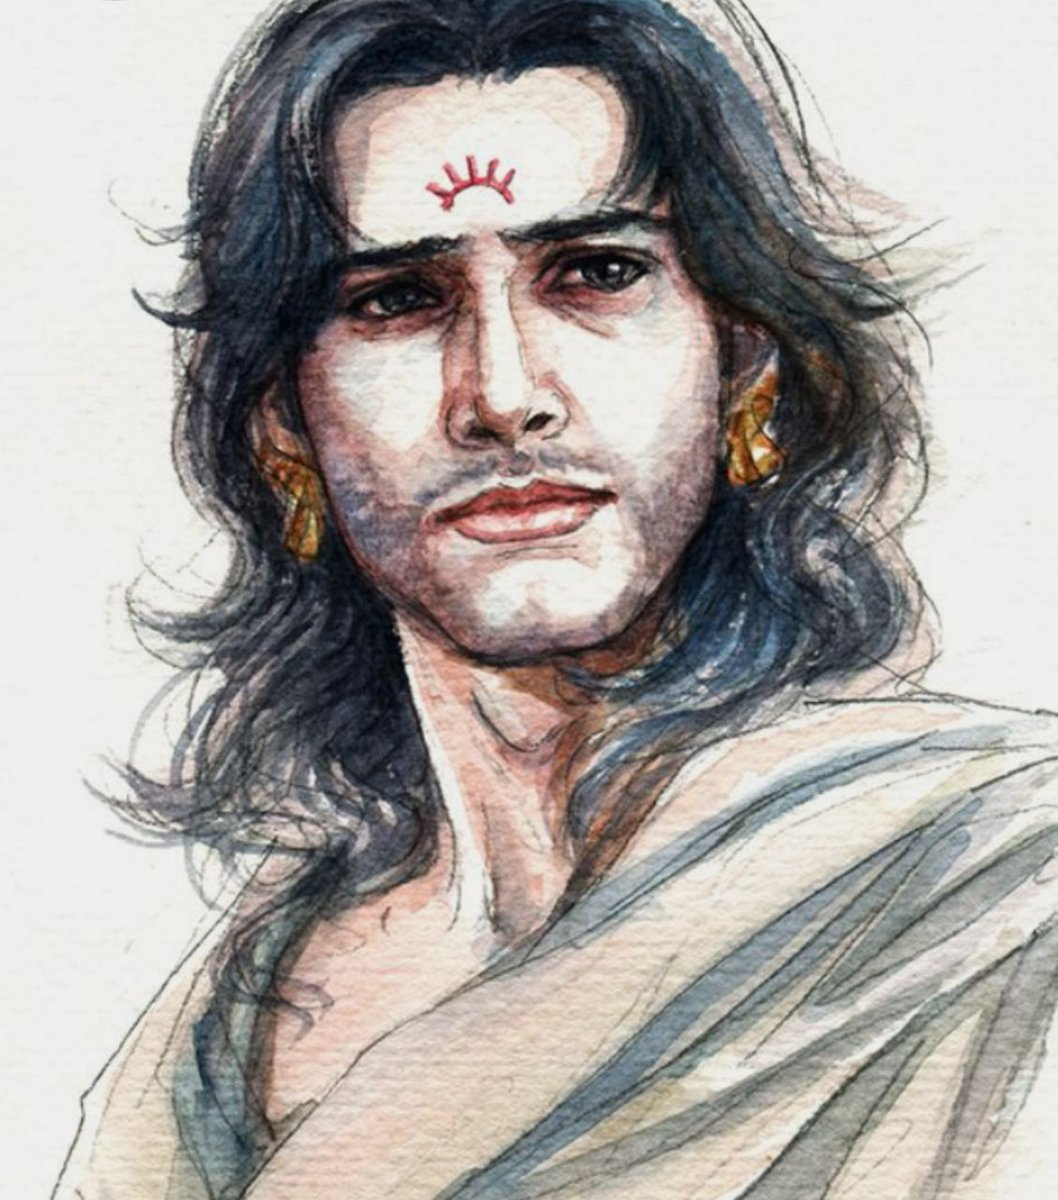 Sonal On Twitter Dark Truth Of Karna It Is True That Karn Was A Brave Warrior But There Were Many Warriors In Mahabharata Period Who Were Able To Defeat Karna 1